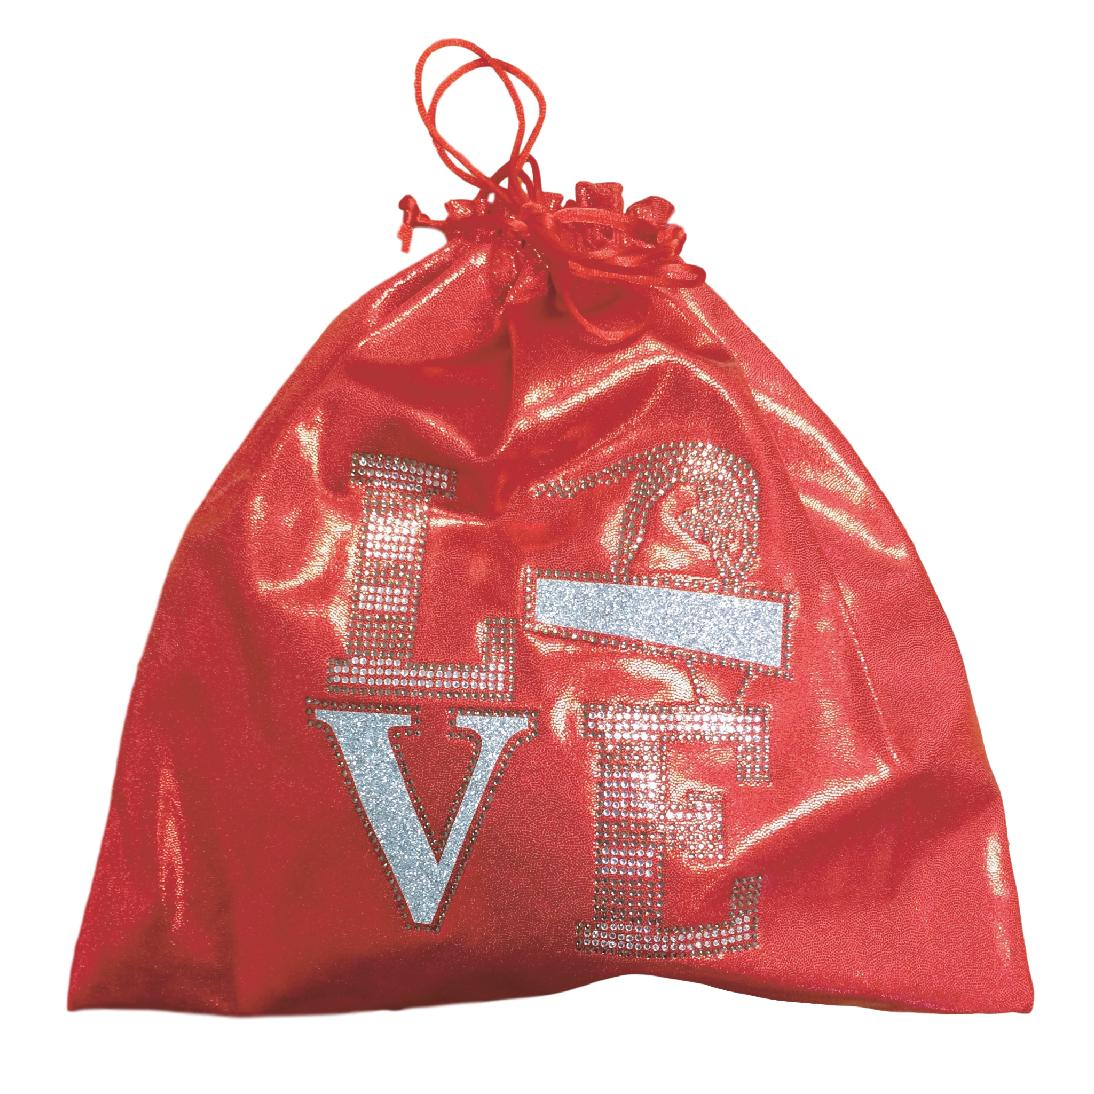 Red Love Grip Bag